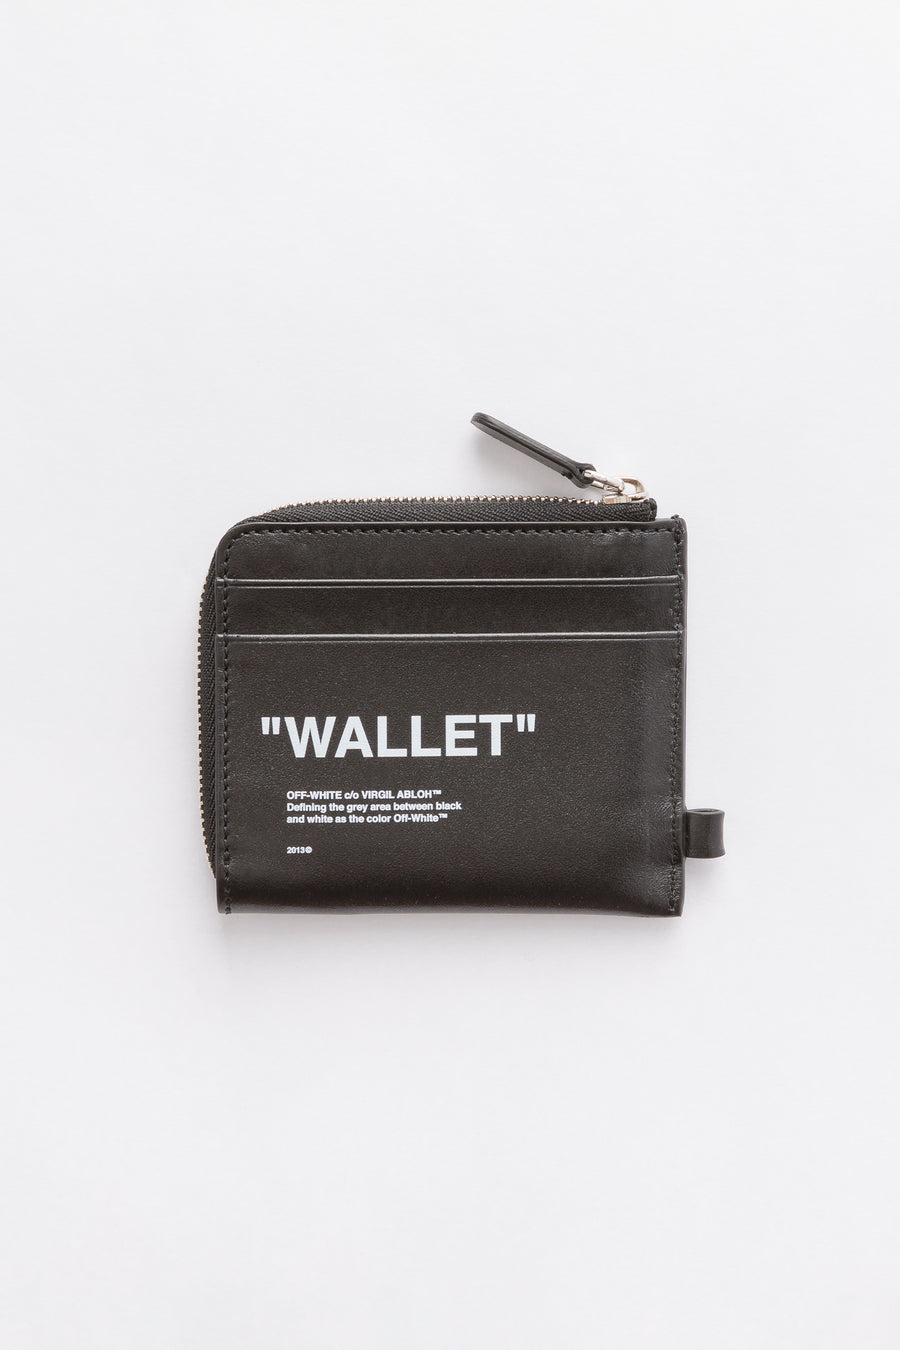 Off-White Quote Chain Wallet in Black/White - Notre